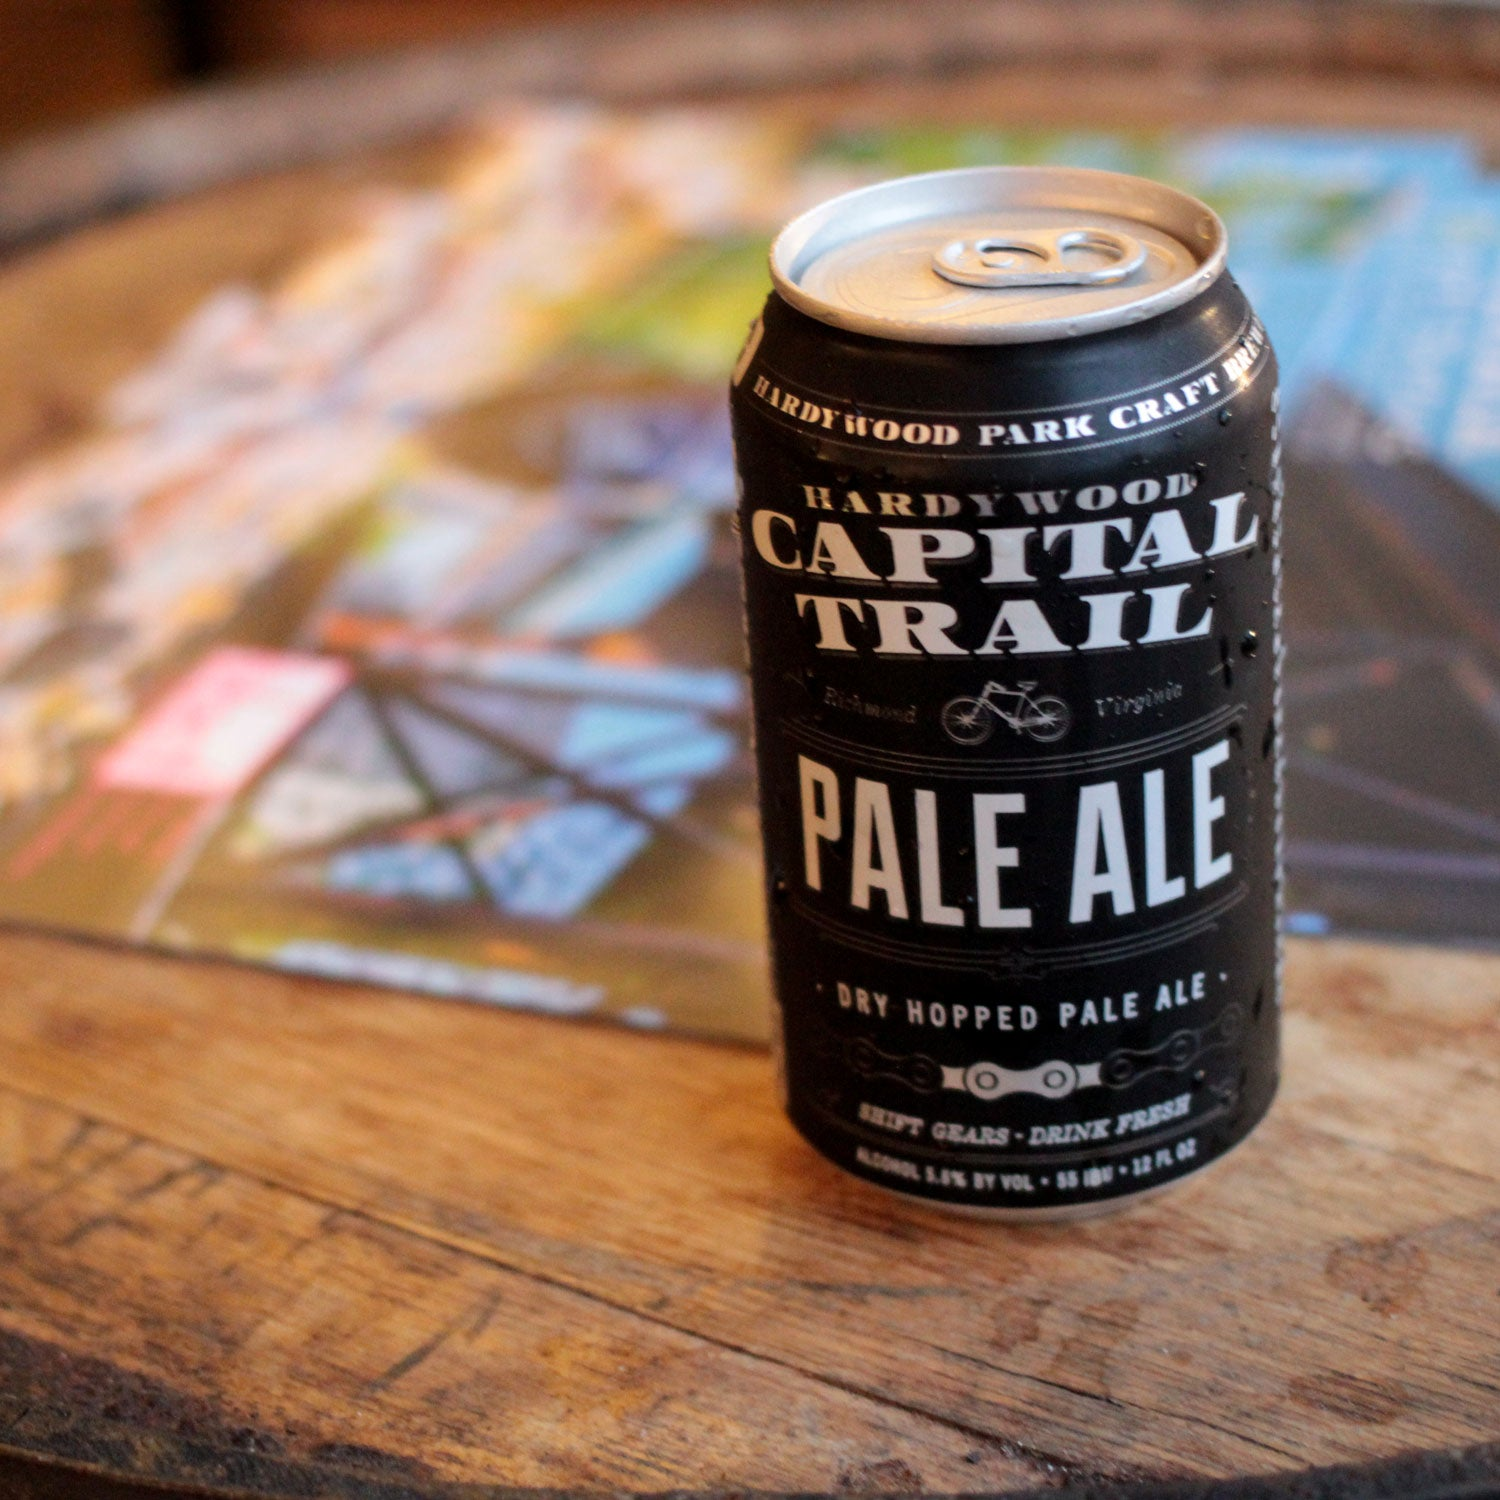 hardywood park craft brewing capital trail pale ale outside beer spring mountain biking